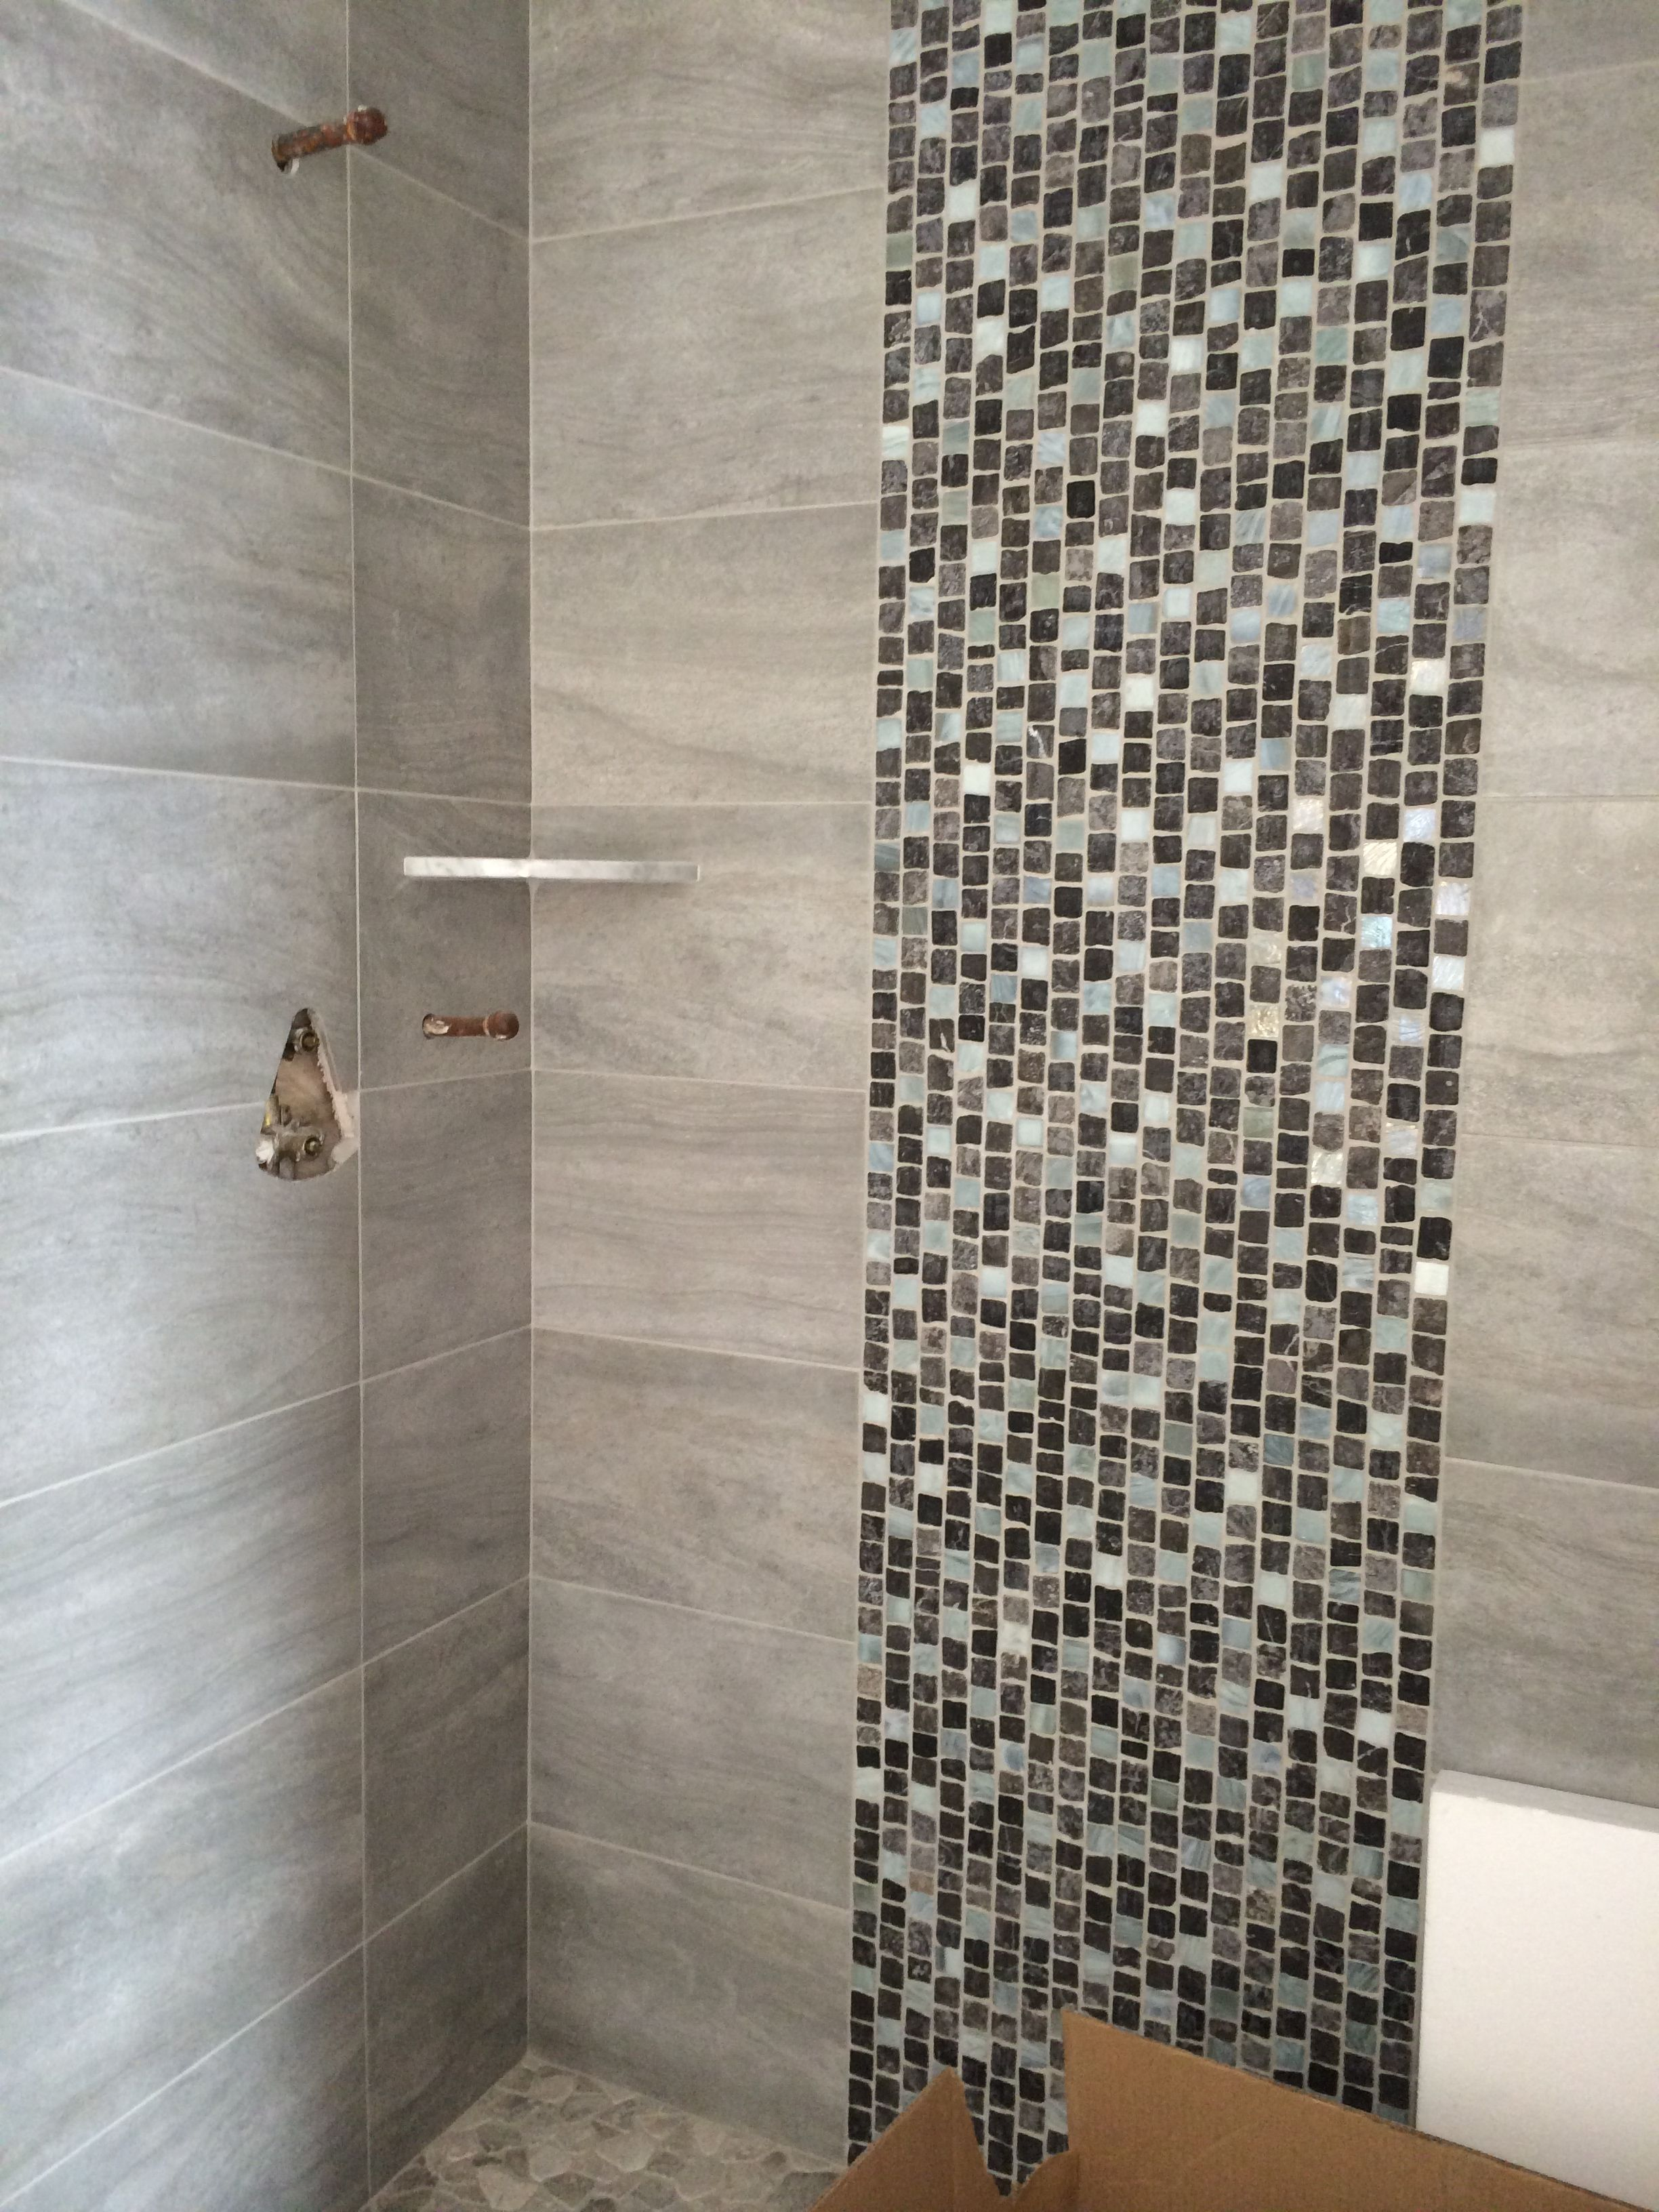 12 X 24 Porcelain Shower Walls W Stone And Glass Tile Lisello Staggered Stone Shower Floor In Progress Shower Wall Tile Tile Bathroom Bathroom Tile Designs